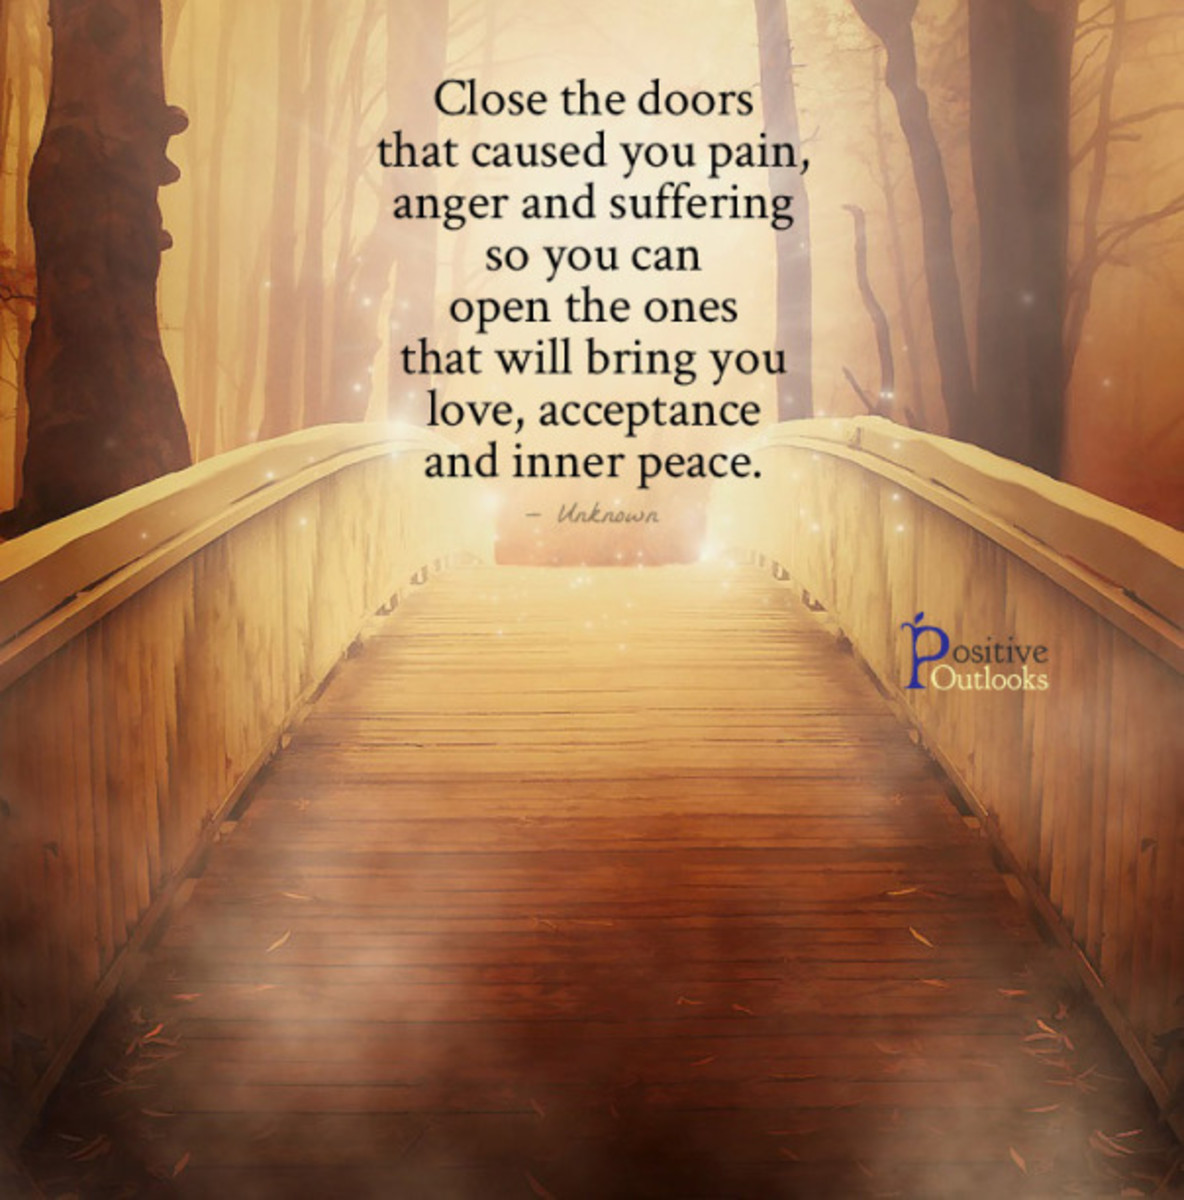 We Should Close the Doors that Cause Pain, and Suffering. Open the ones that will Bring Love and Inner Peace!